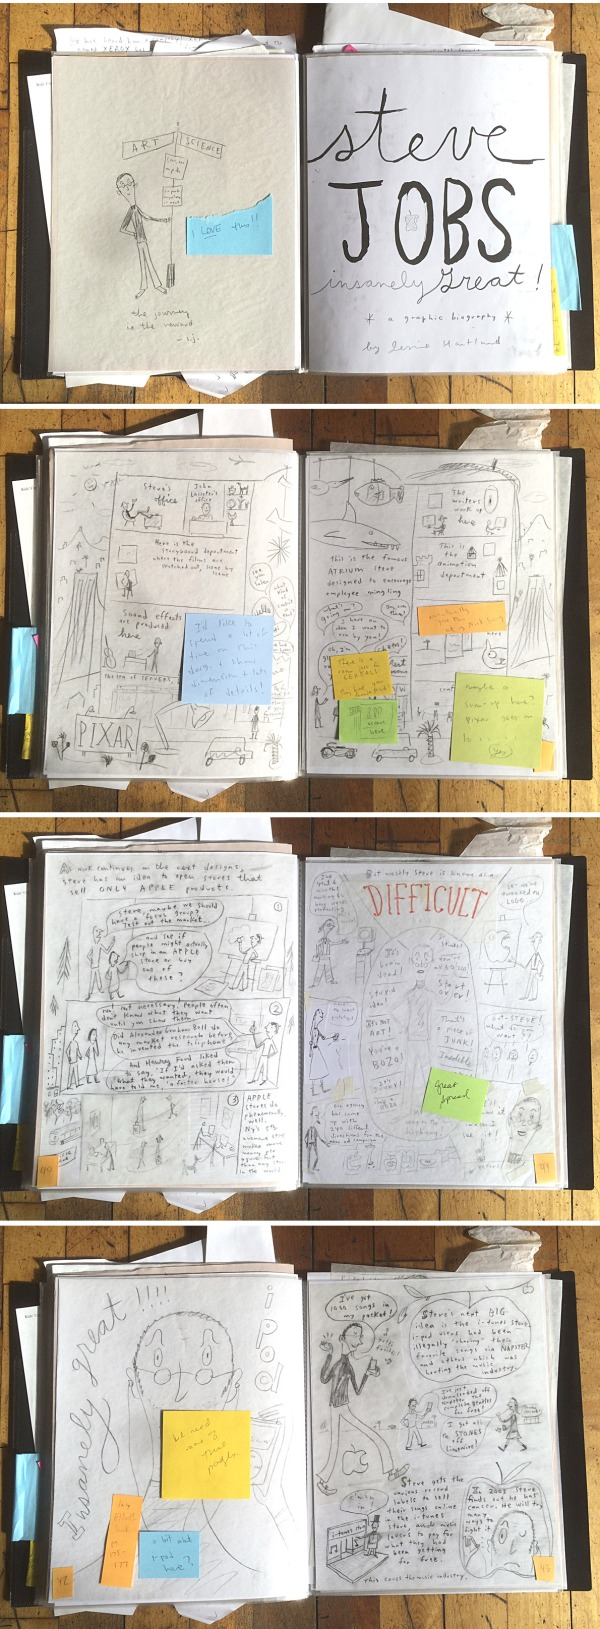 More sketches from Steve Jobs: Insanely Great by Jessie Hartland. (Click to enlarge.)